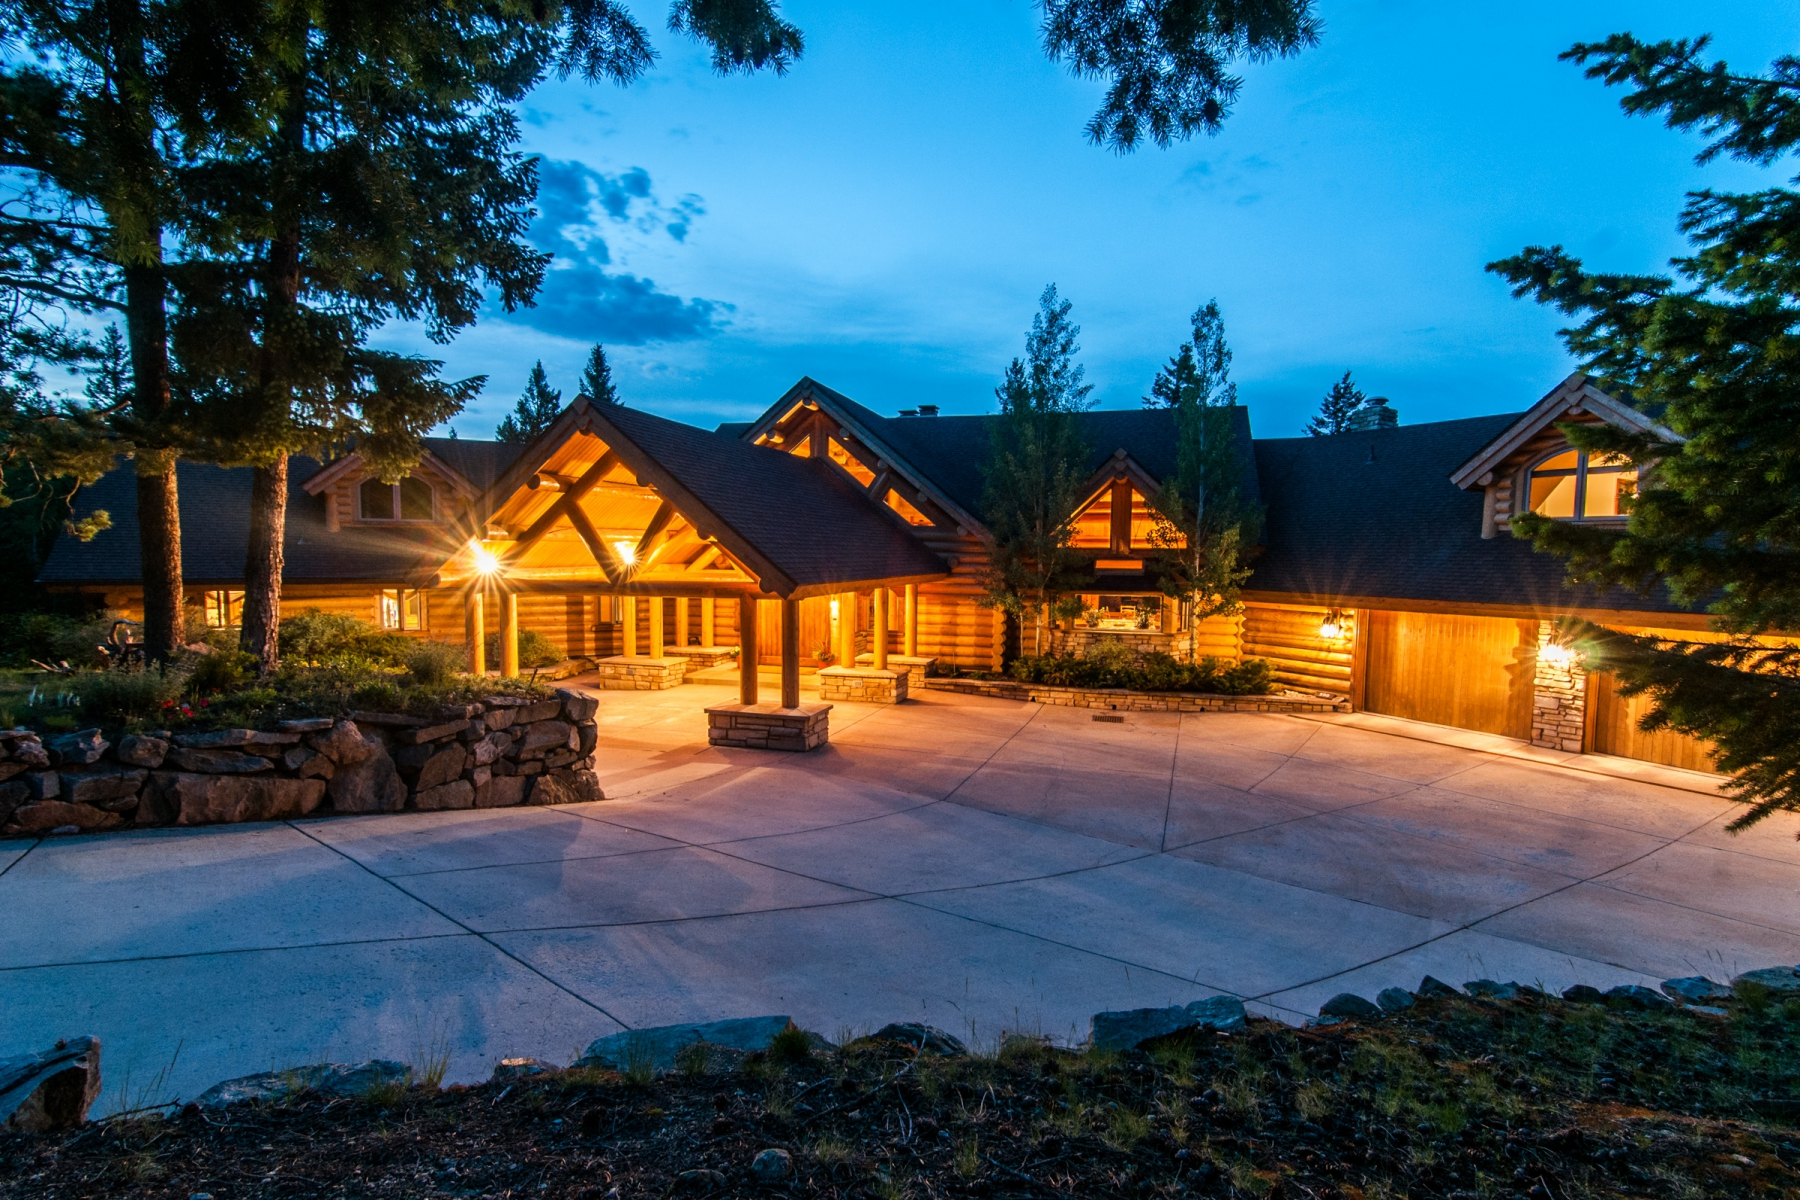 Maison unifamiliale pour l Vente à Tranquil Mountain Estate 590 West Meadow Road Evergreen, Colorado, 80439 États-Unis